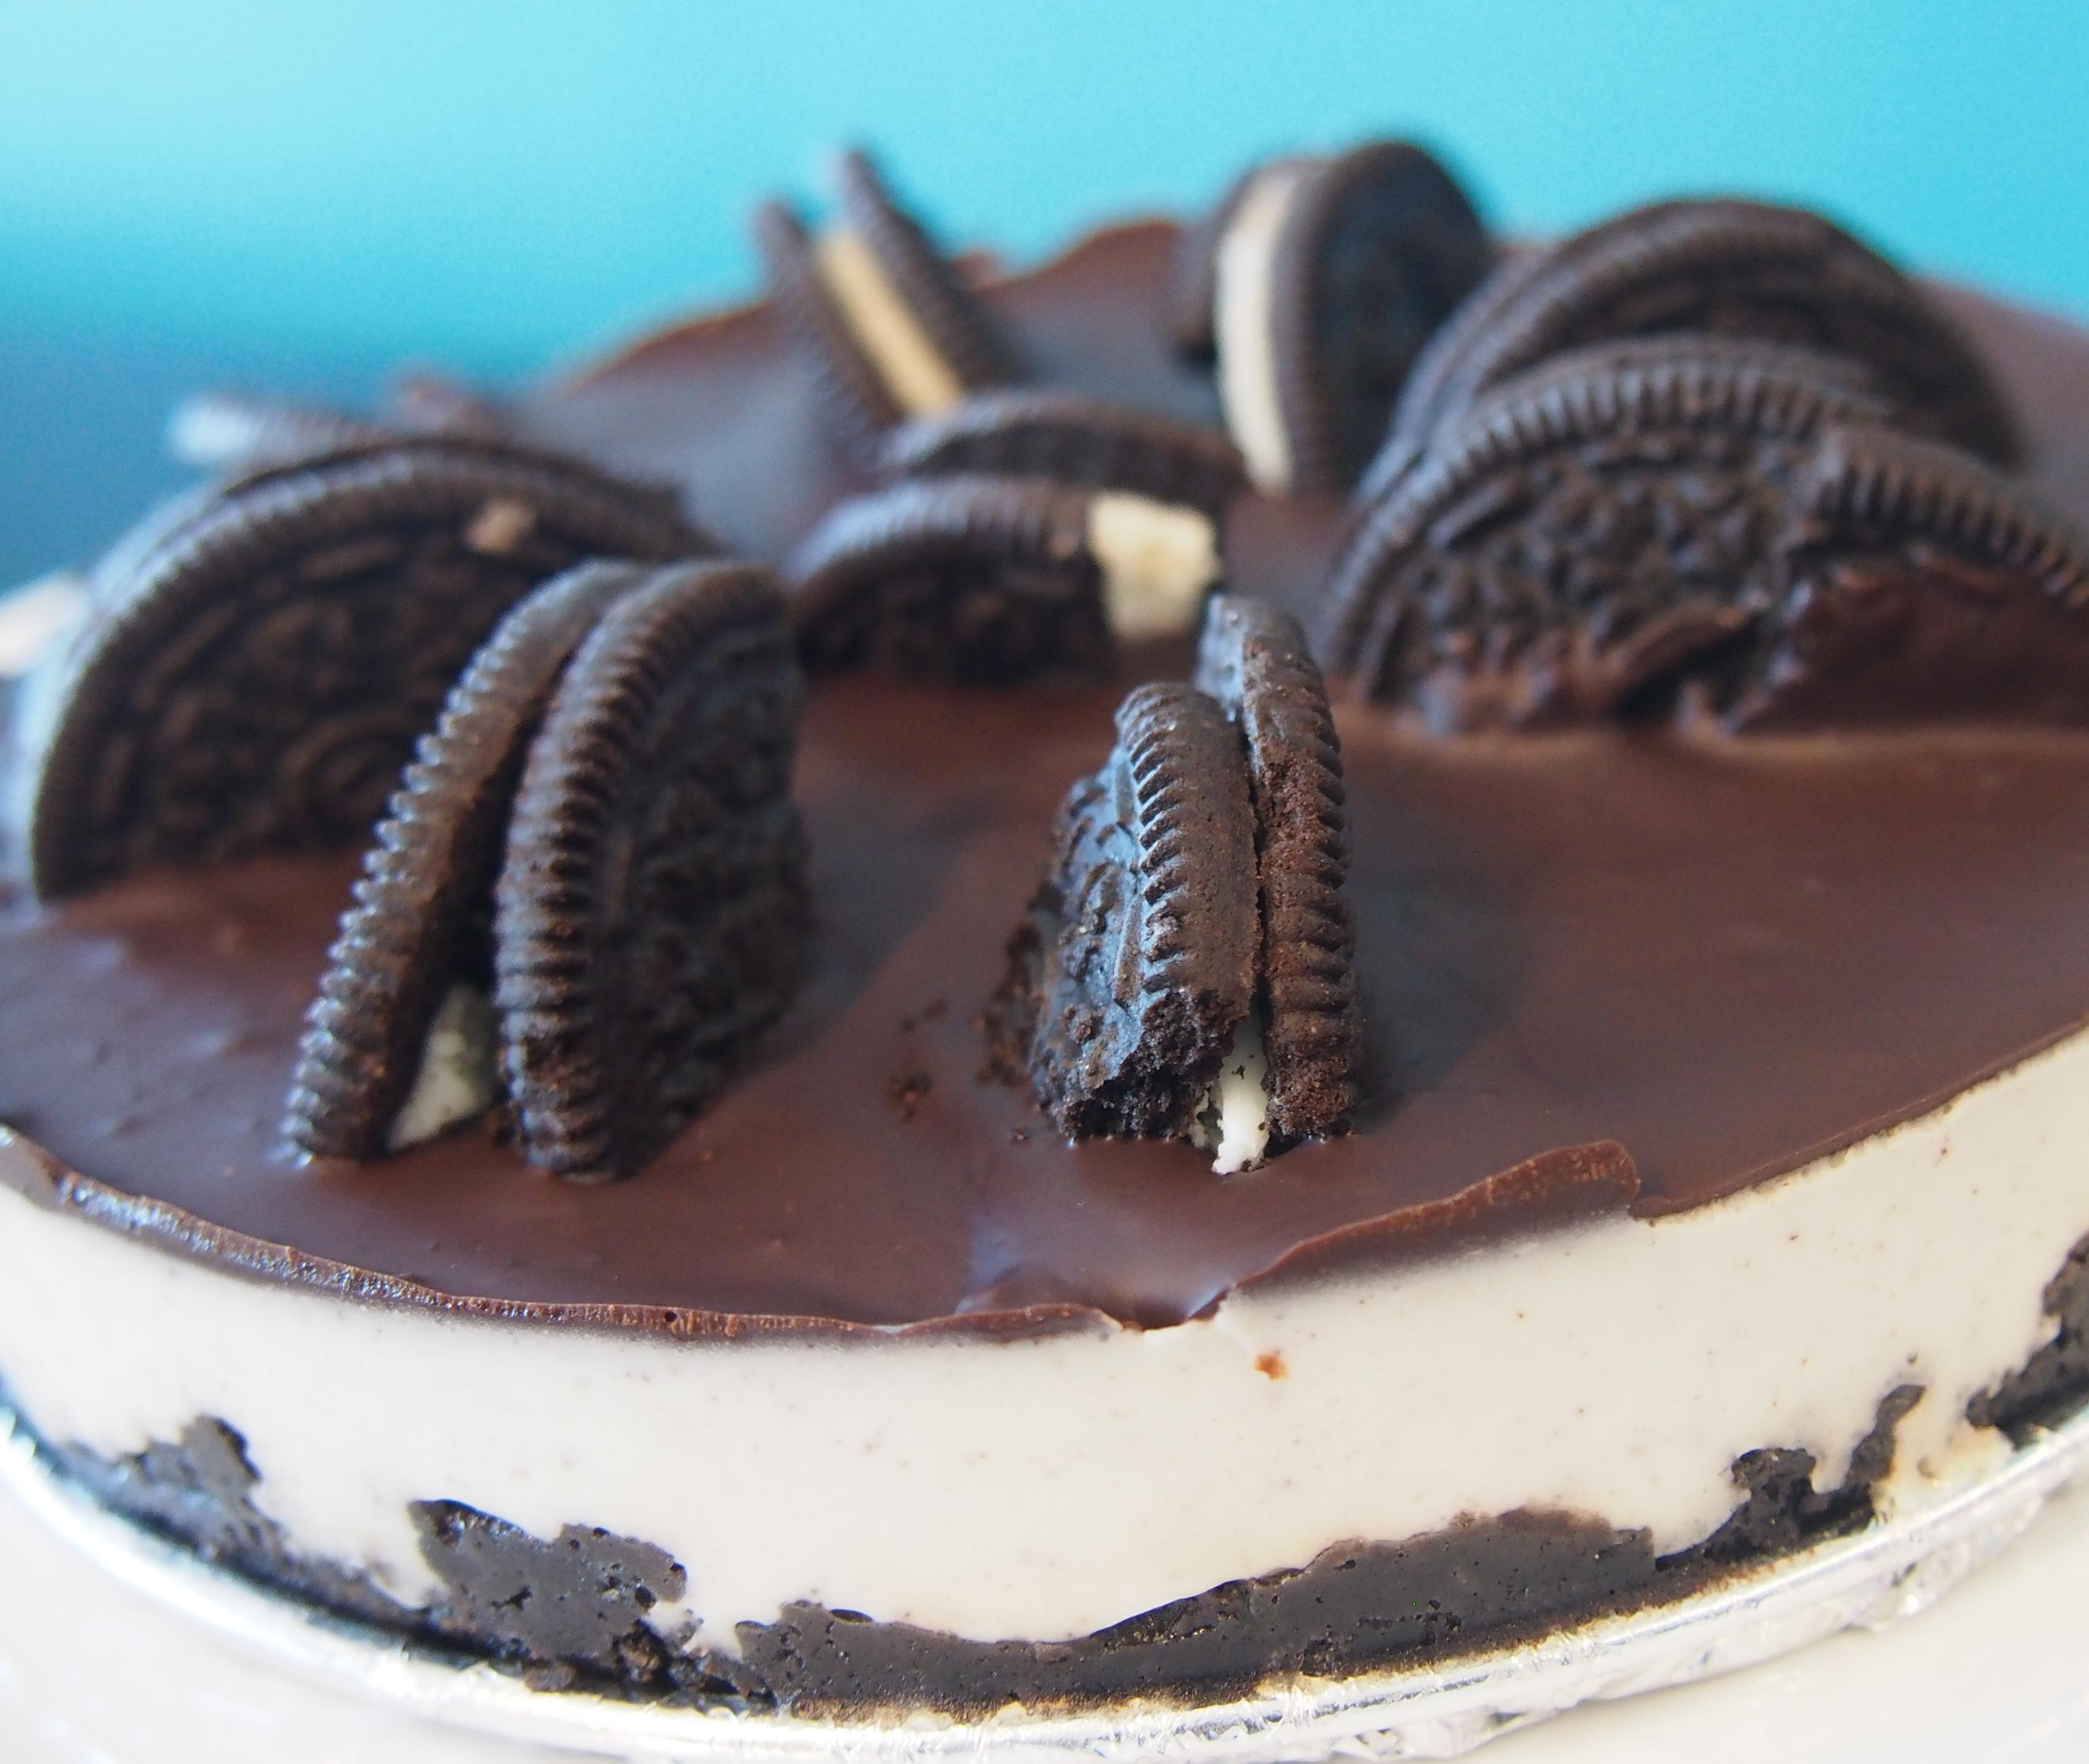 Supergod Oreo cheesecake